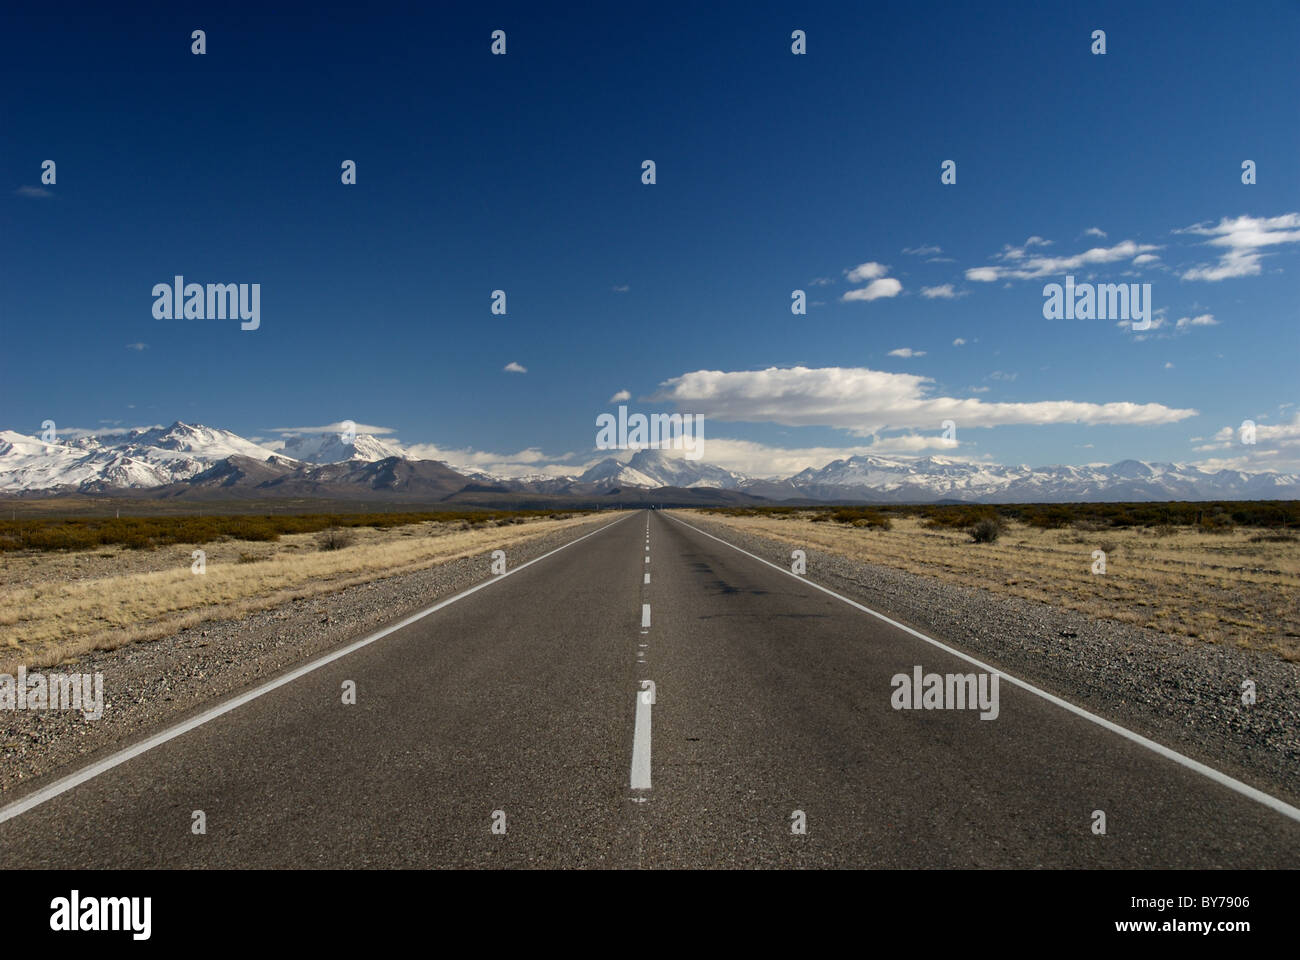 Argentinian Road near Malargue, Argentina - Stock Image